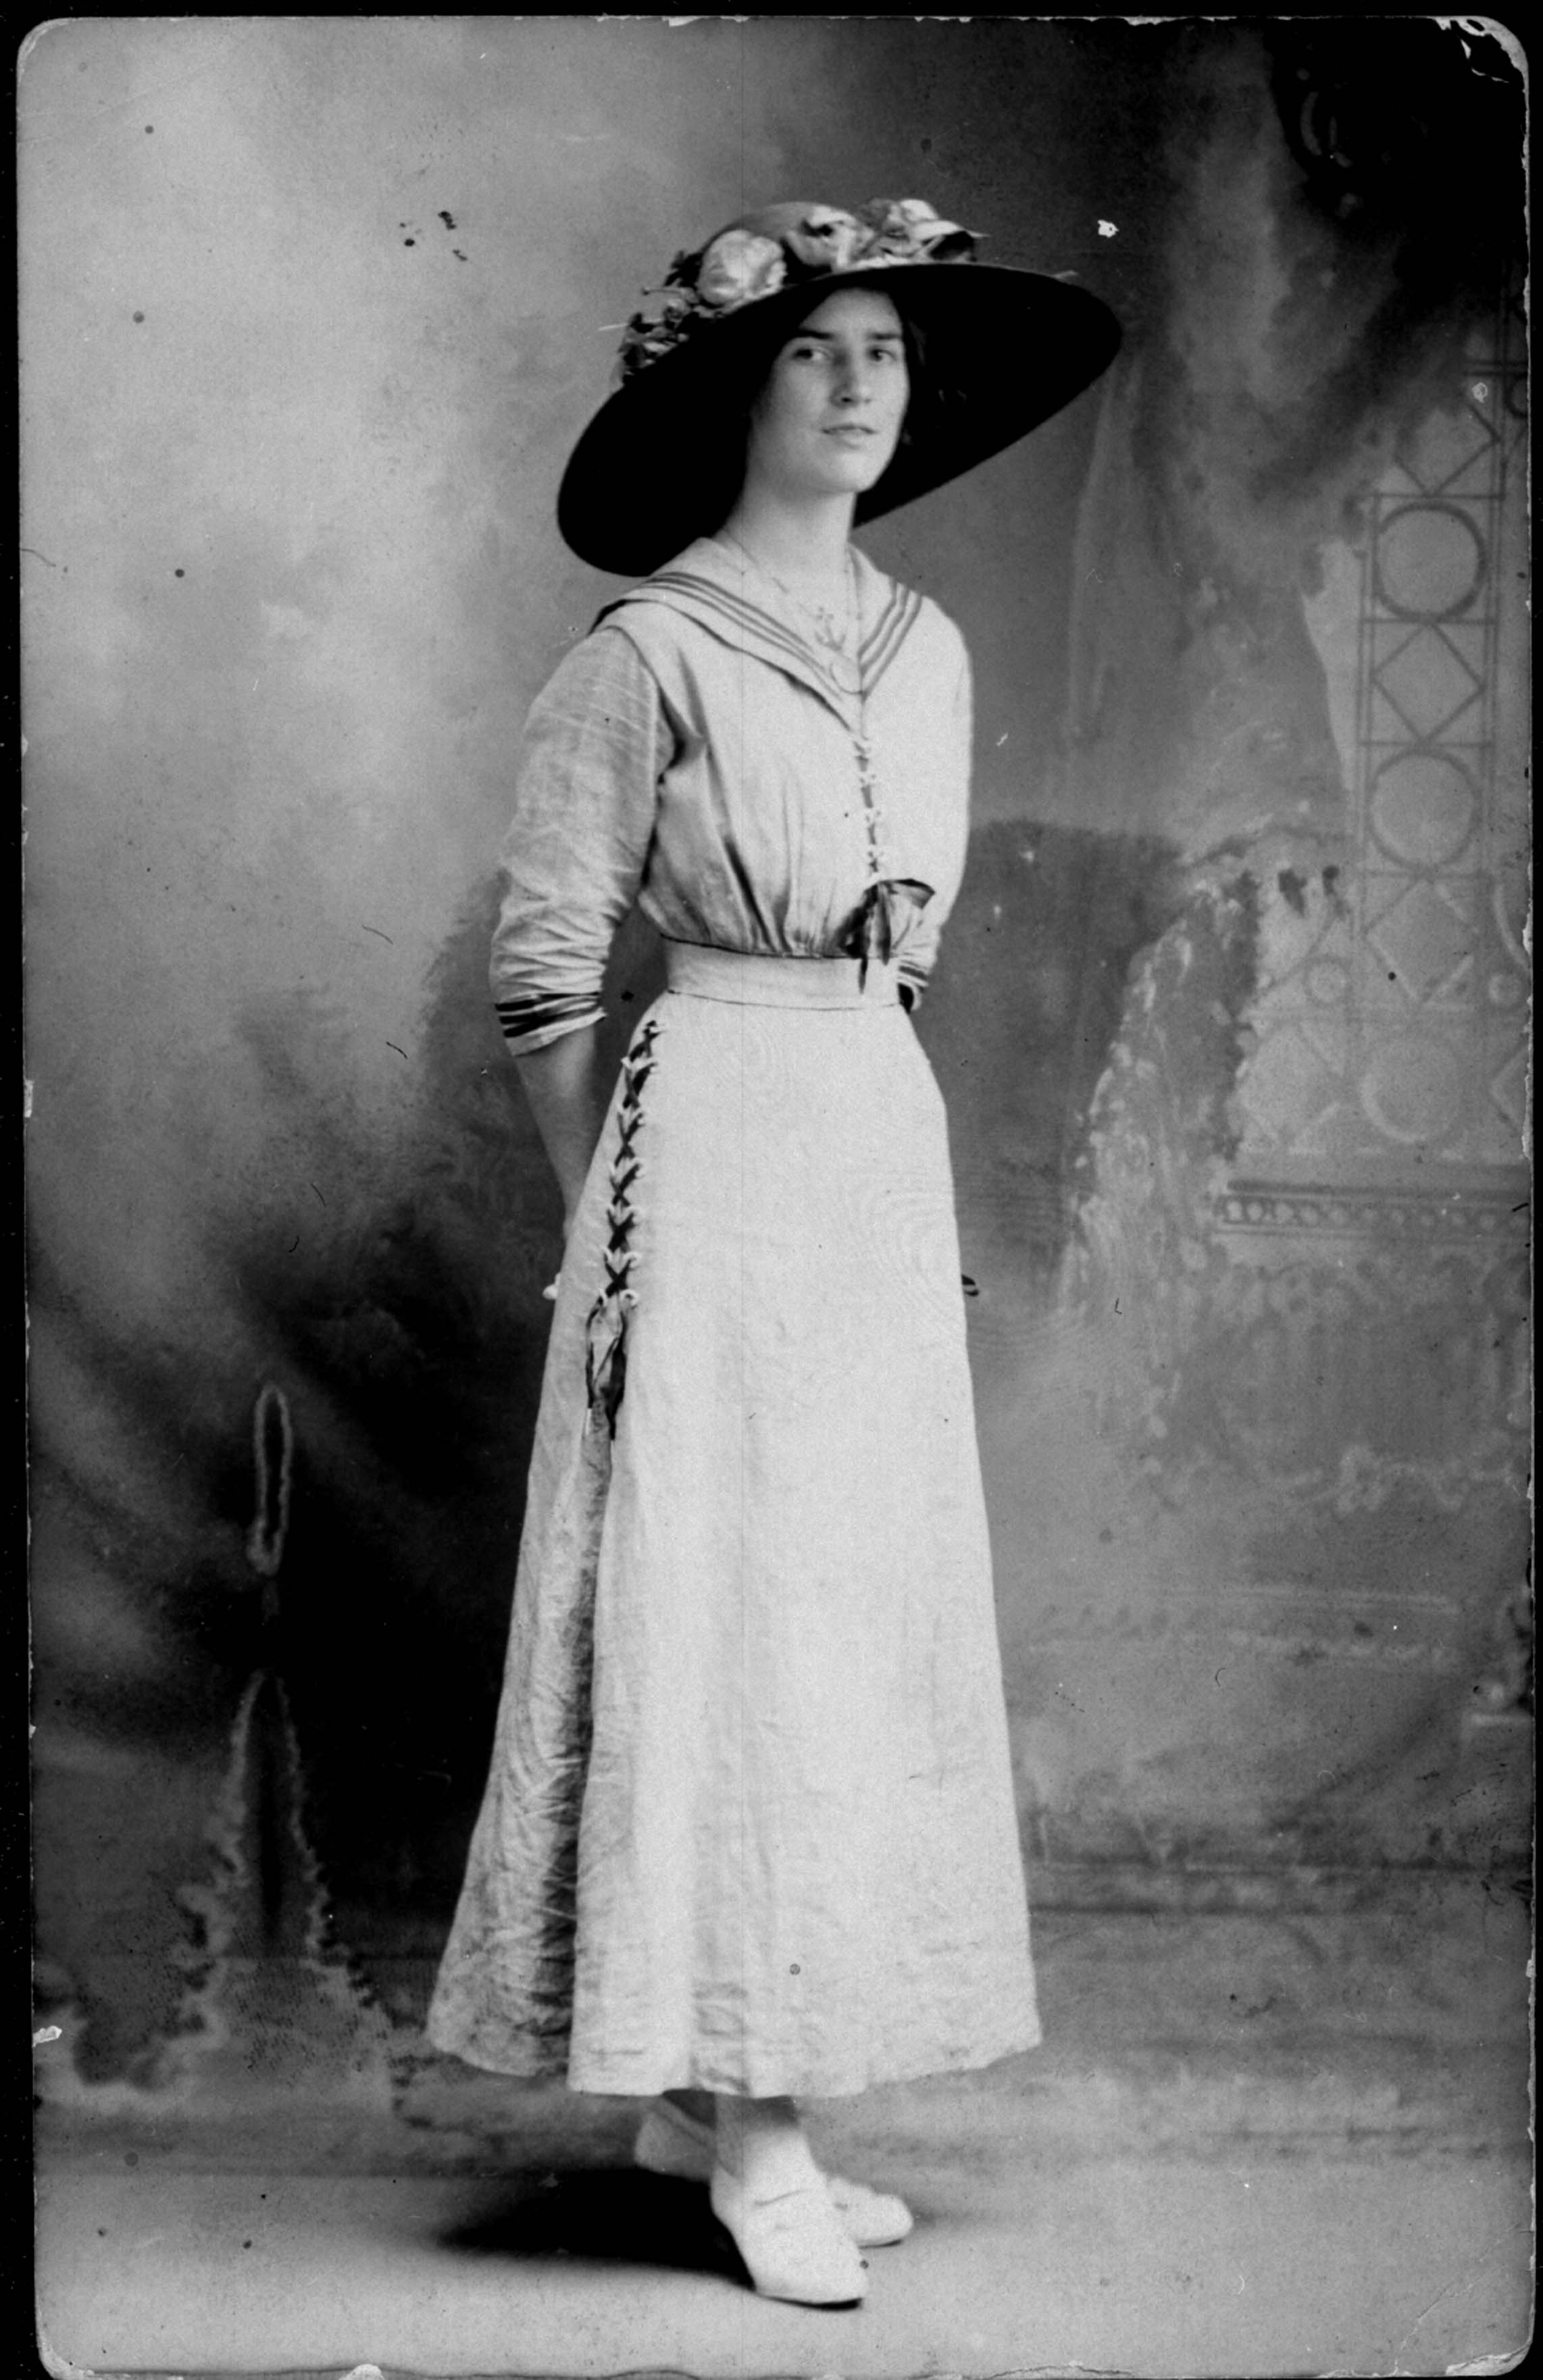 Lena Hughs Paxton lived in the North Davidson area. This photograph was taken around 1910.